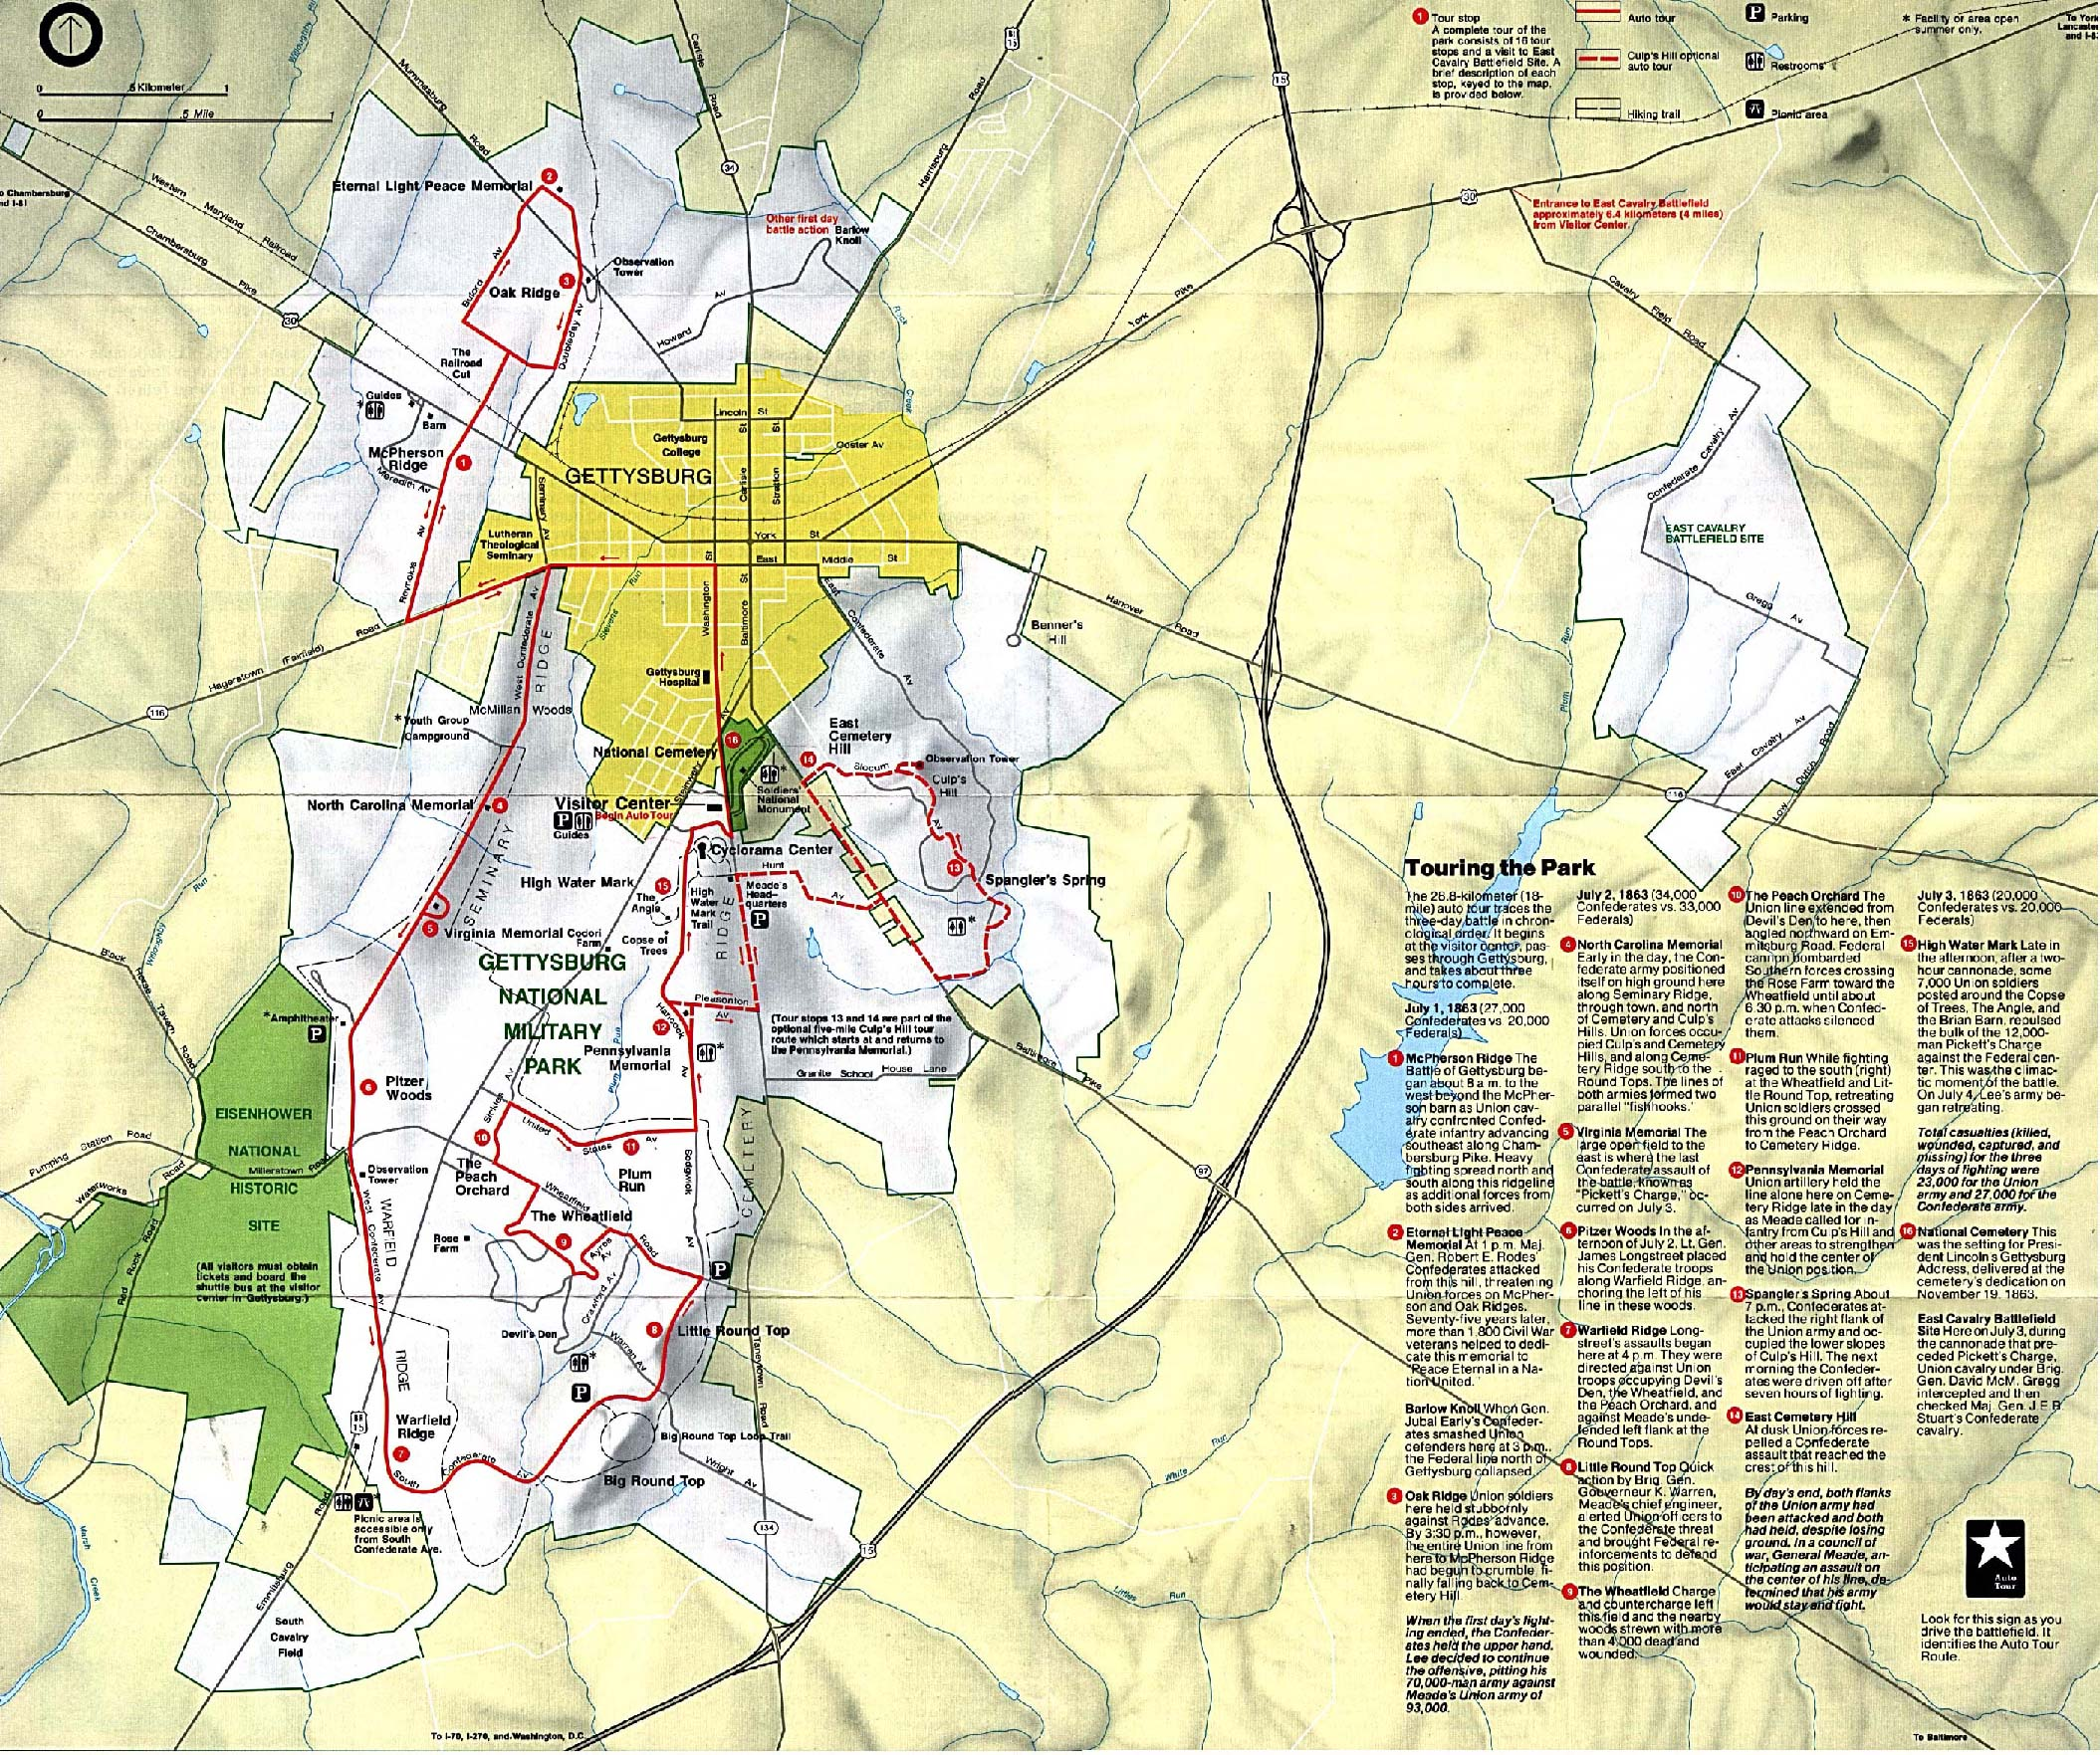 Maps of United States National Parks, Monuments and Historic Sites Gettysburg National Military Park [Pennsylvania] (Park Map / Shaded Relief) 1995 (995K)